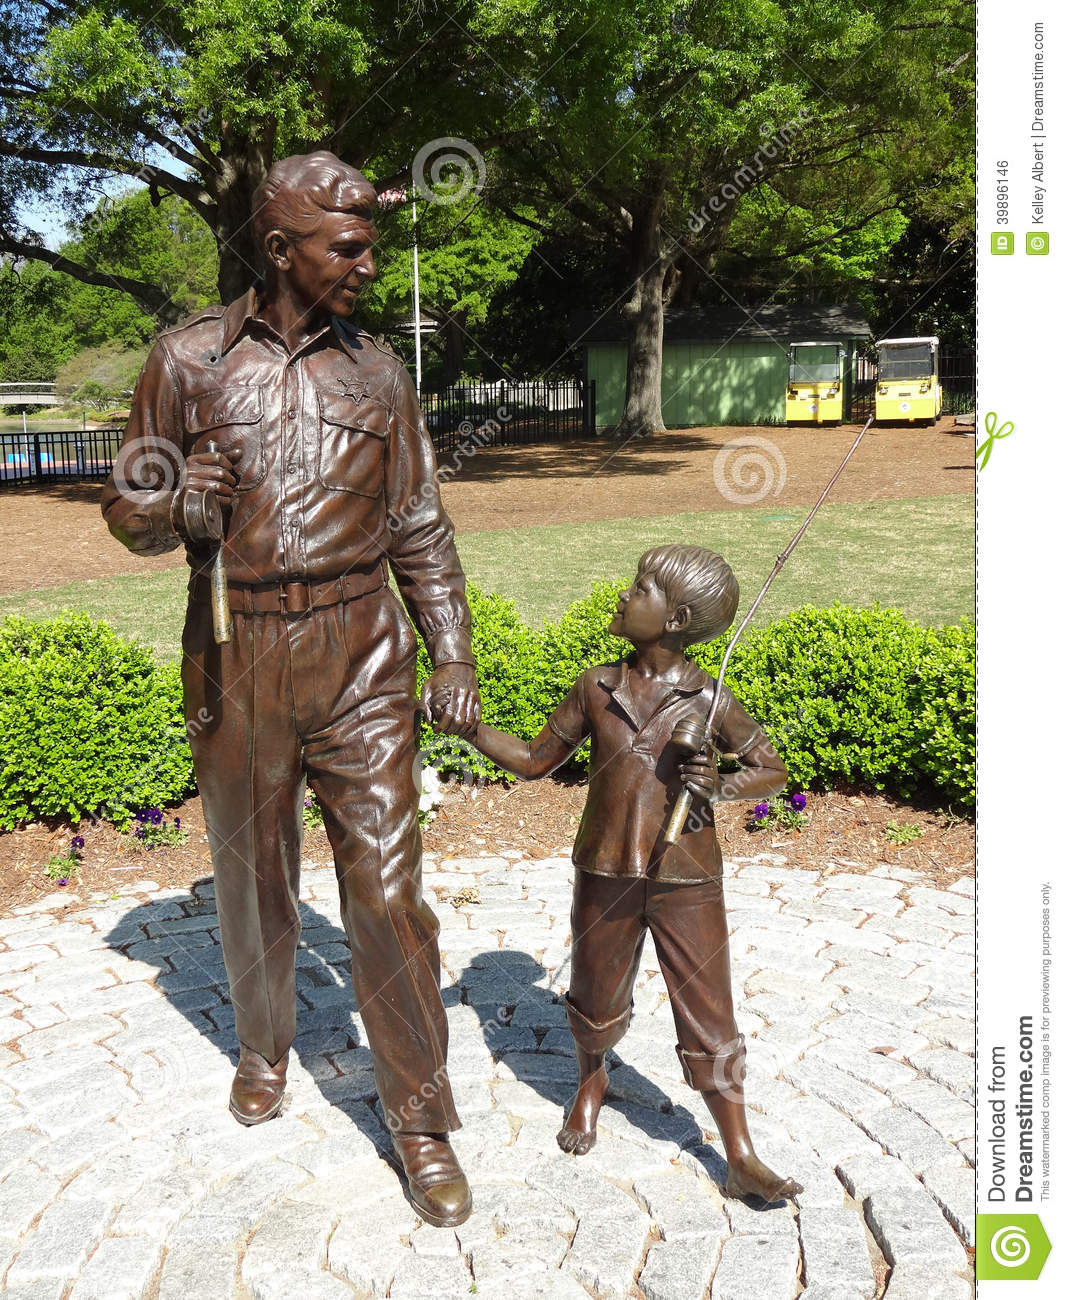 Andy Griffith and Opie Sculpture at Pullen Park in Raleigh, North Carolina